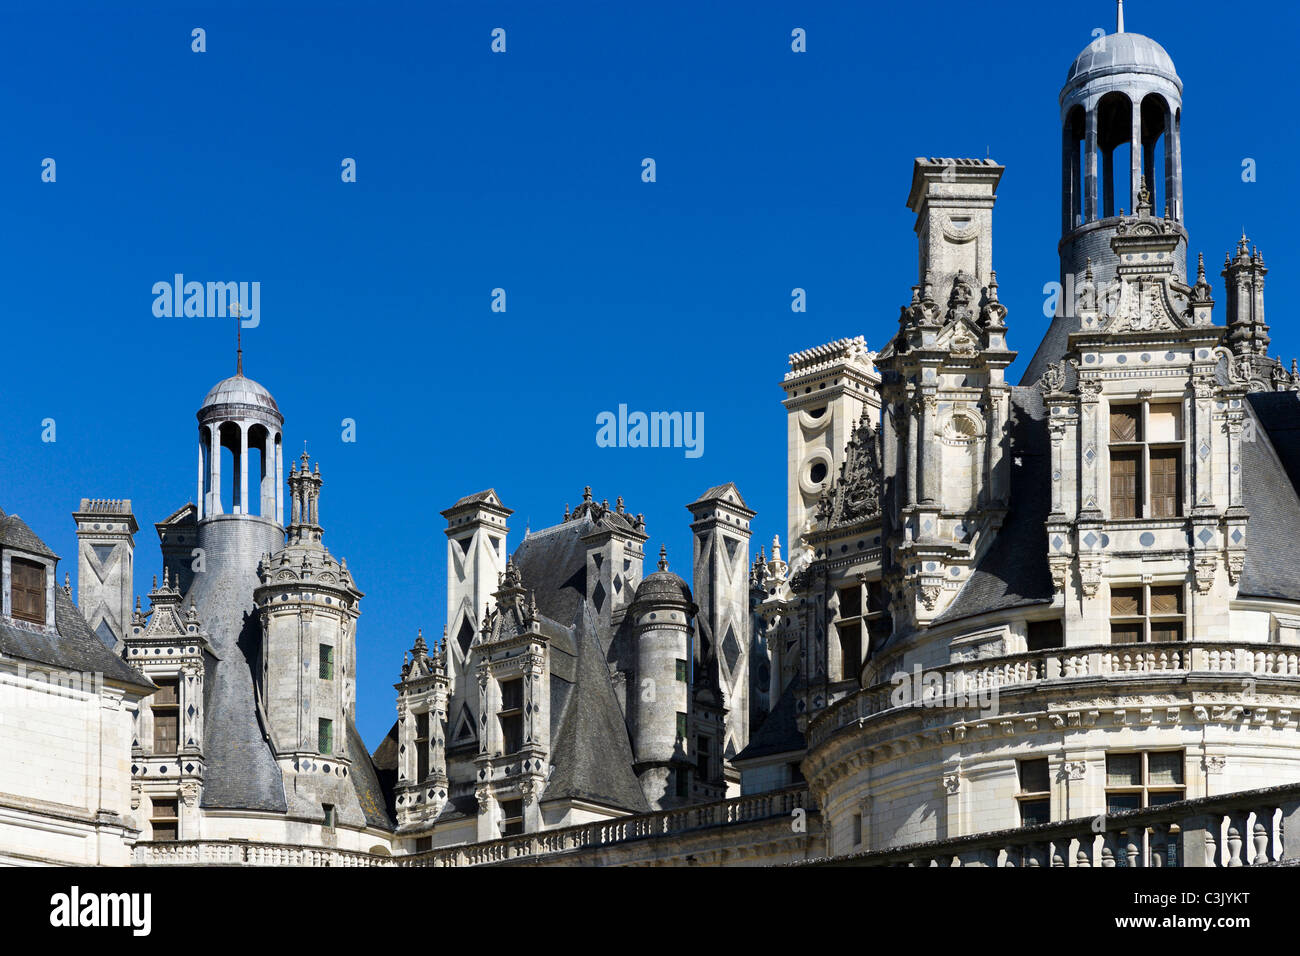 Multiple chimneys on the roof of the Chateau de Chambord, Loire Valley, Touraine, France - Stock Image